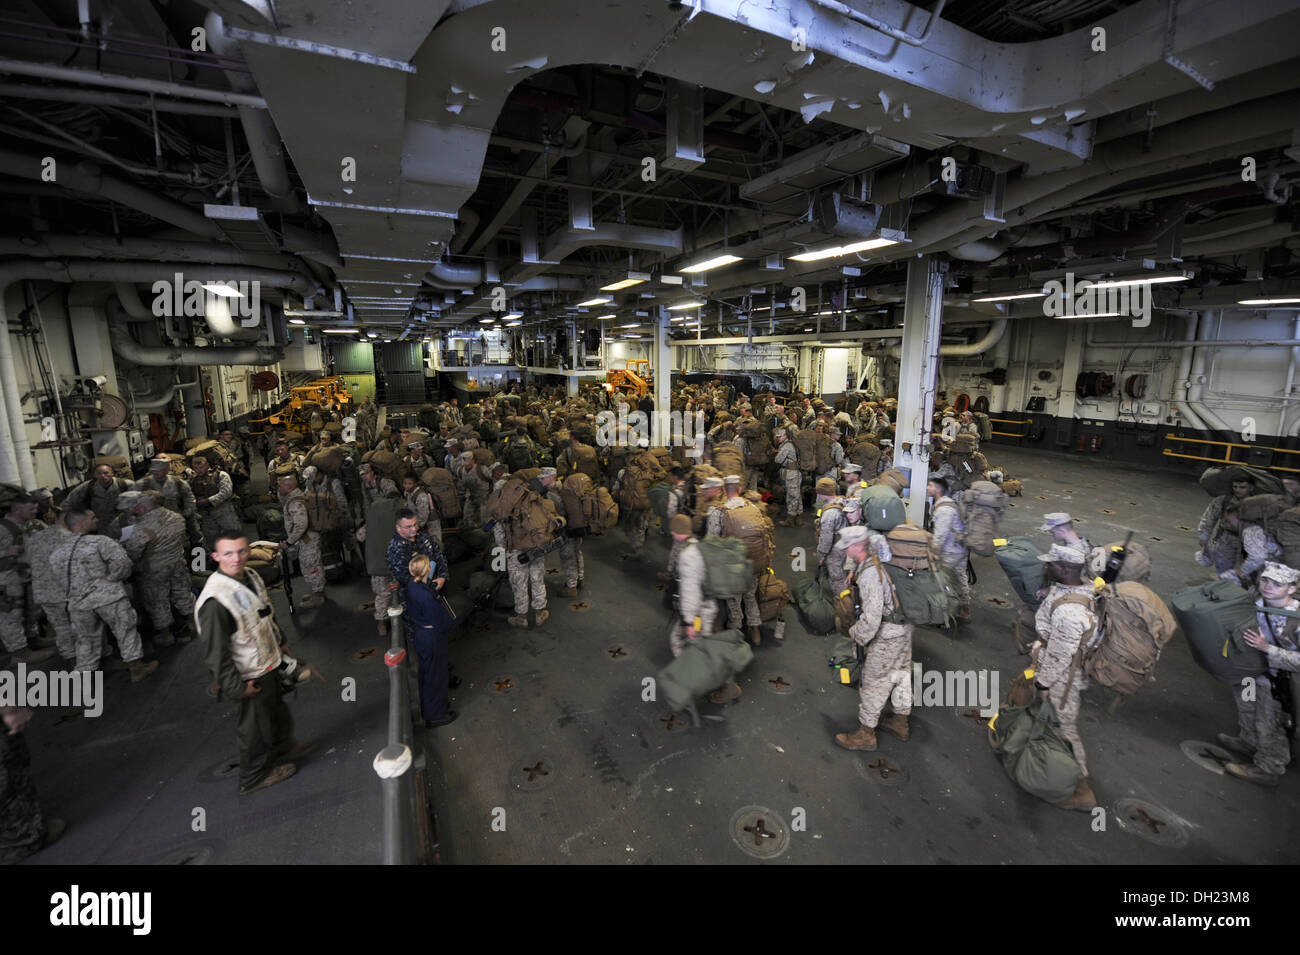 Marines await further instruction inside the well deck of the multipurpose amphibious assault ship USS Bataan (LHD 5). Bataan Sailors and 22nd Marine Expeditionary Unit Marines are underway conducting routine qualifications. - Stock Image